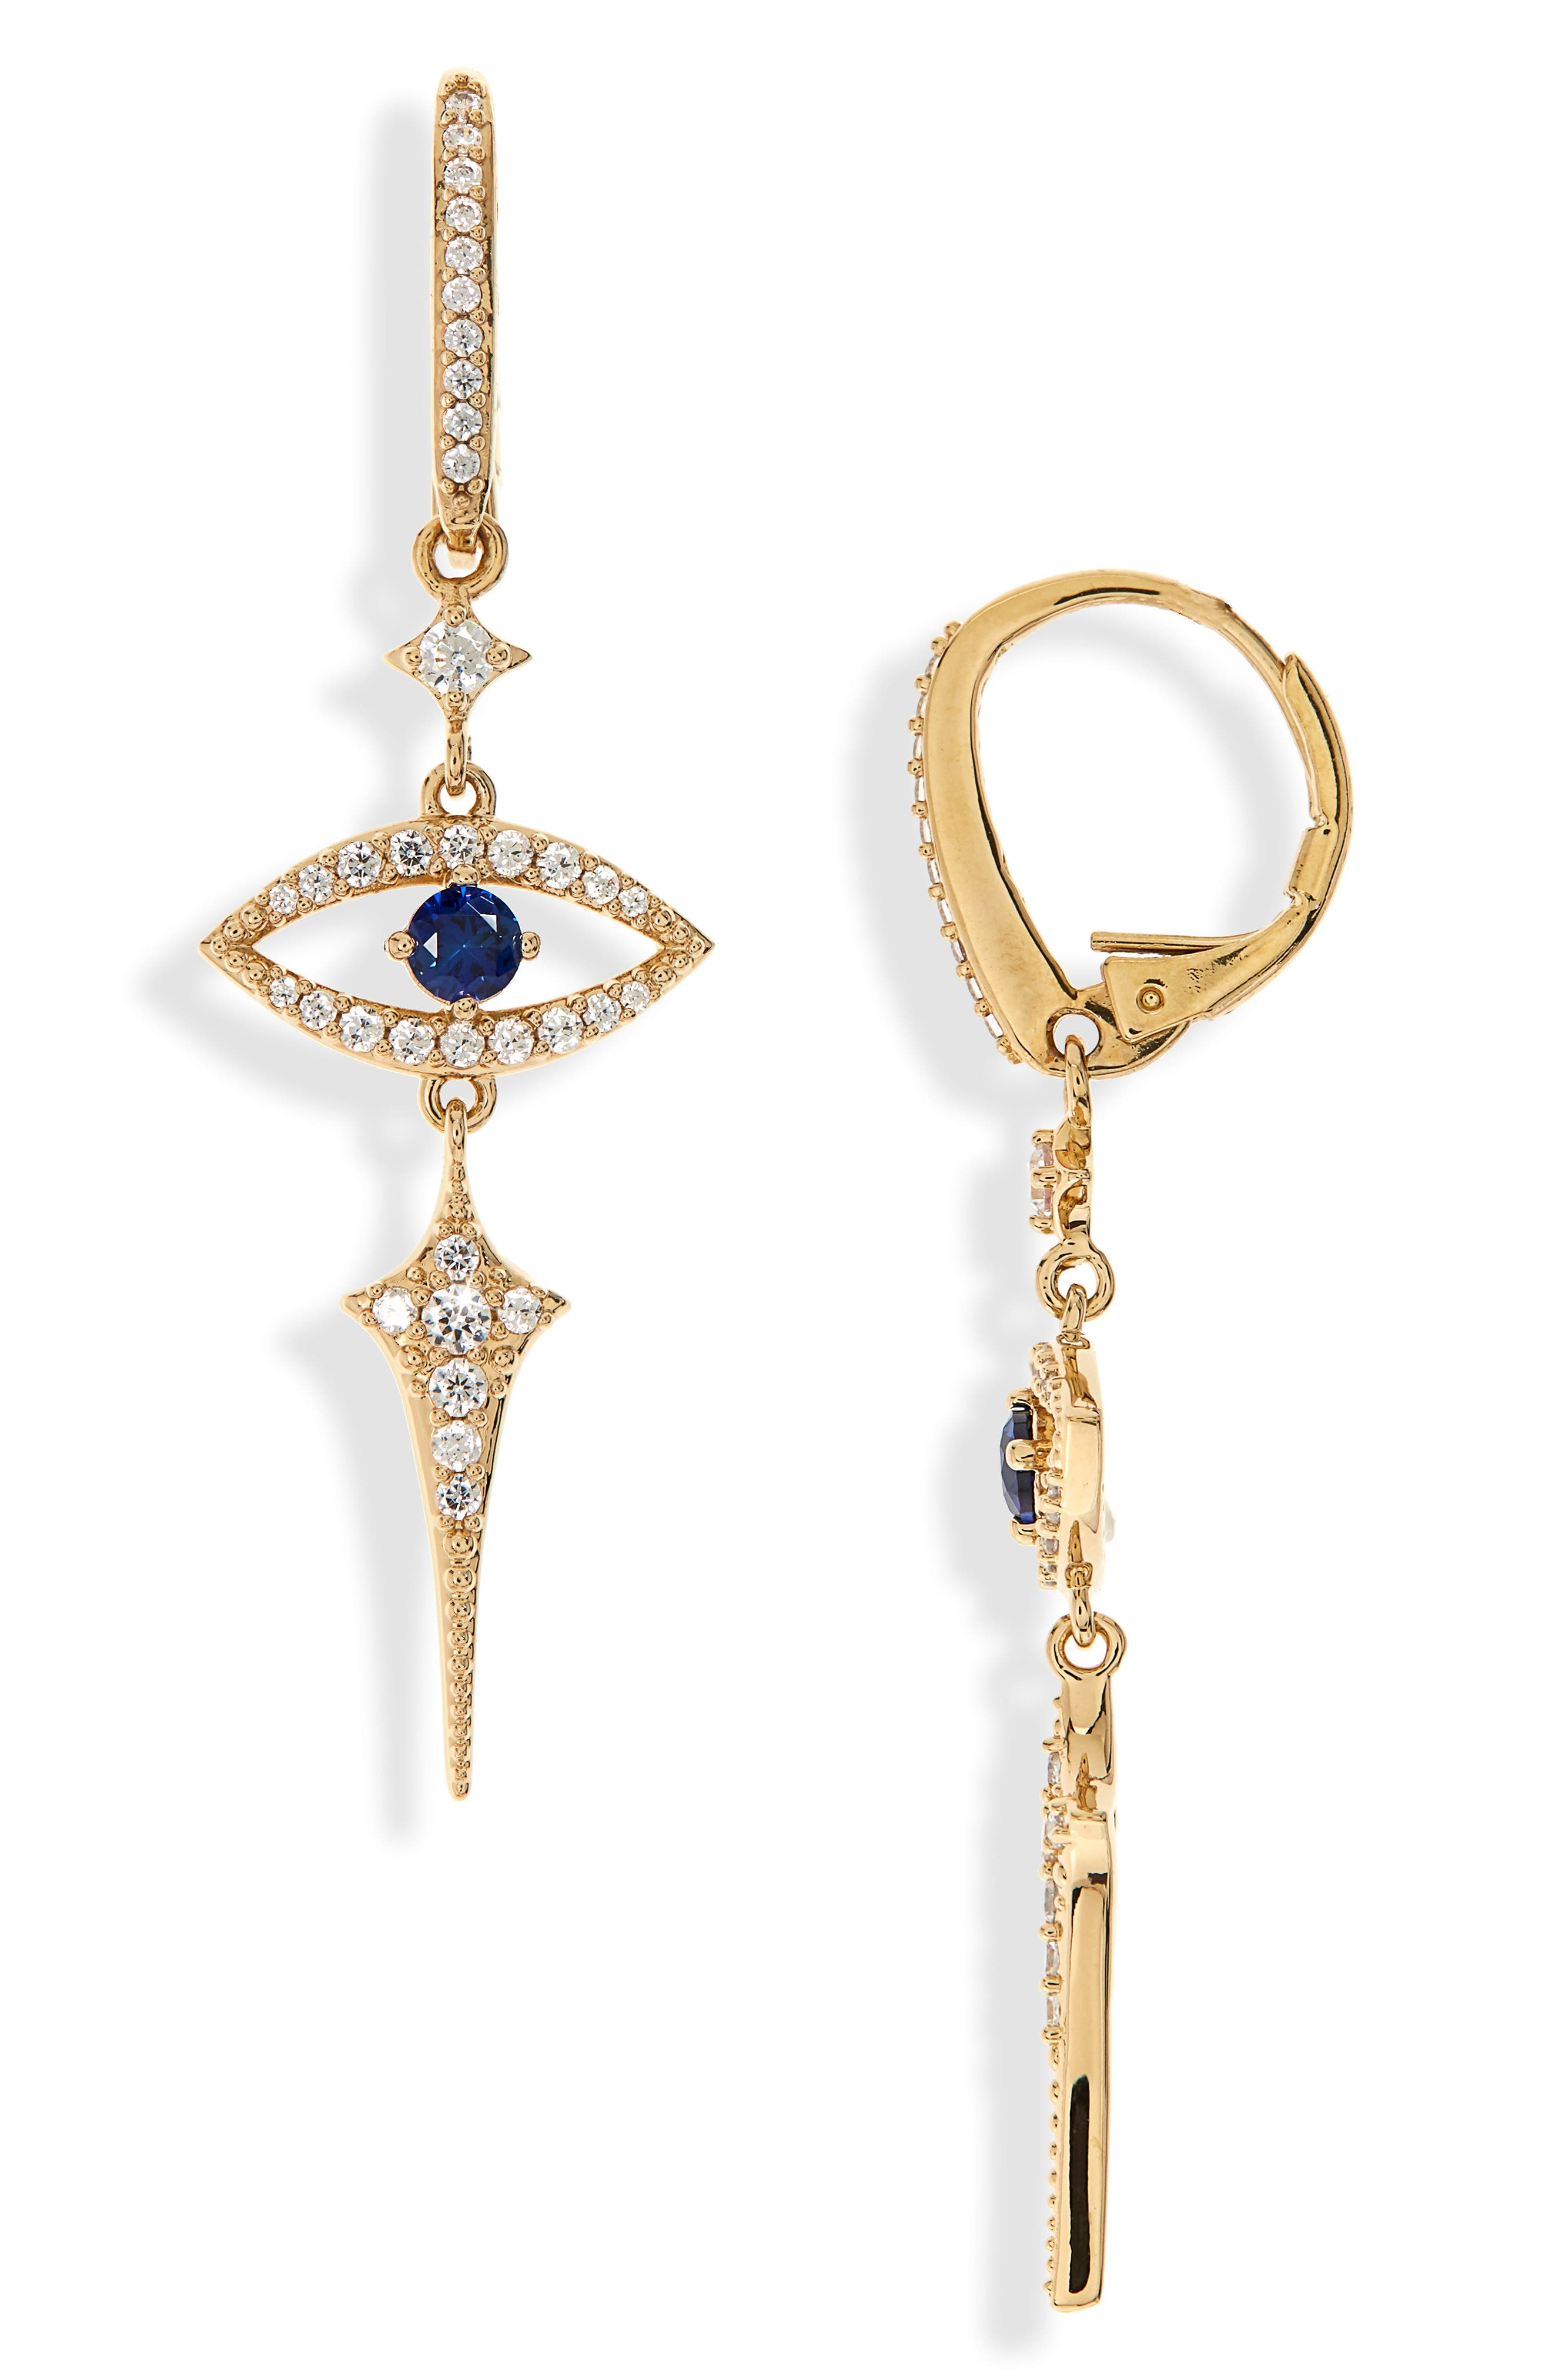 Nazar Evil Eye Earrings,                             Main thumbnail 1, color,                             710